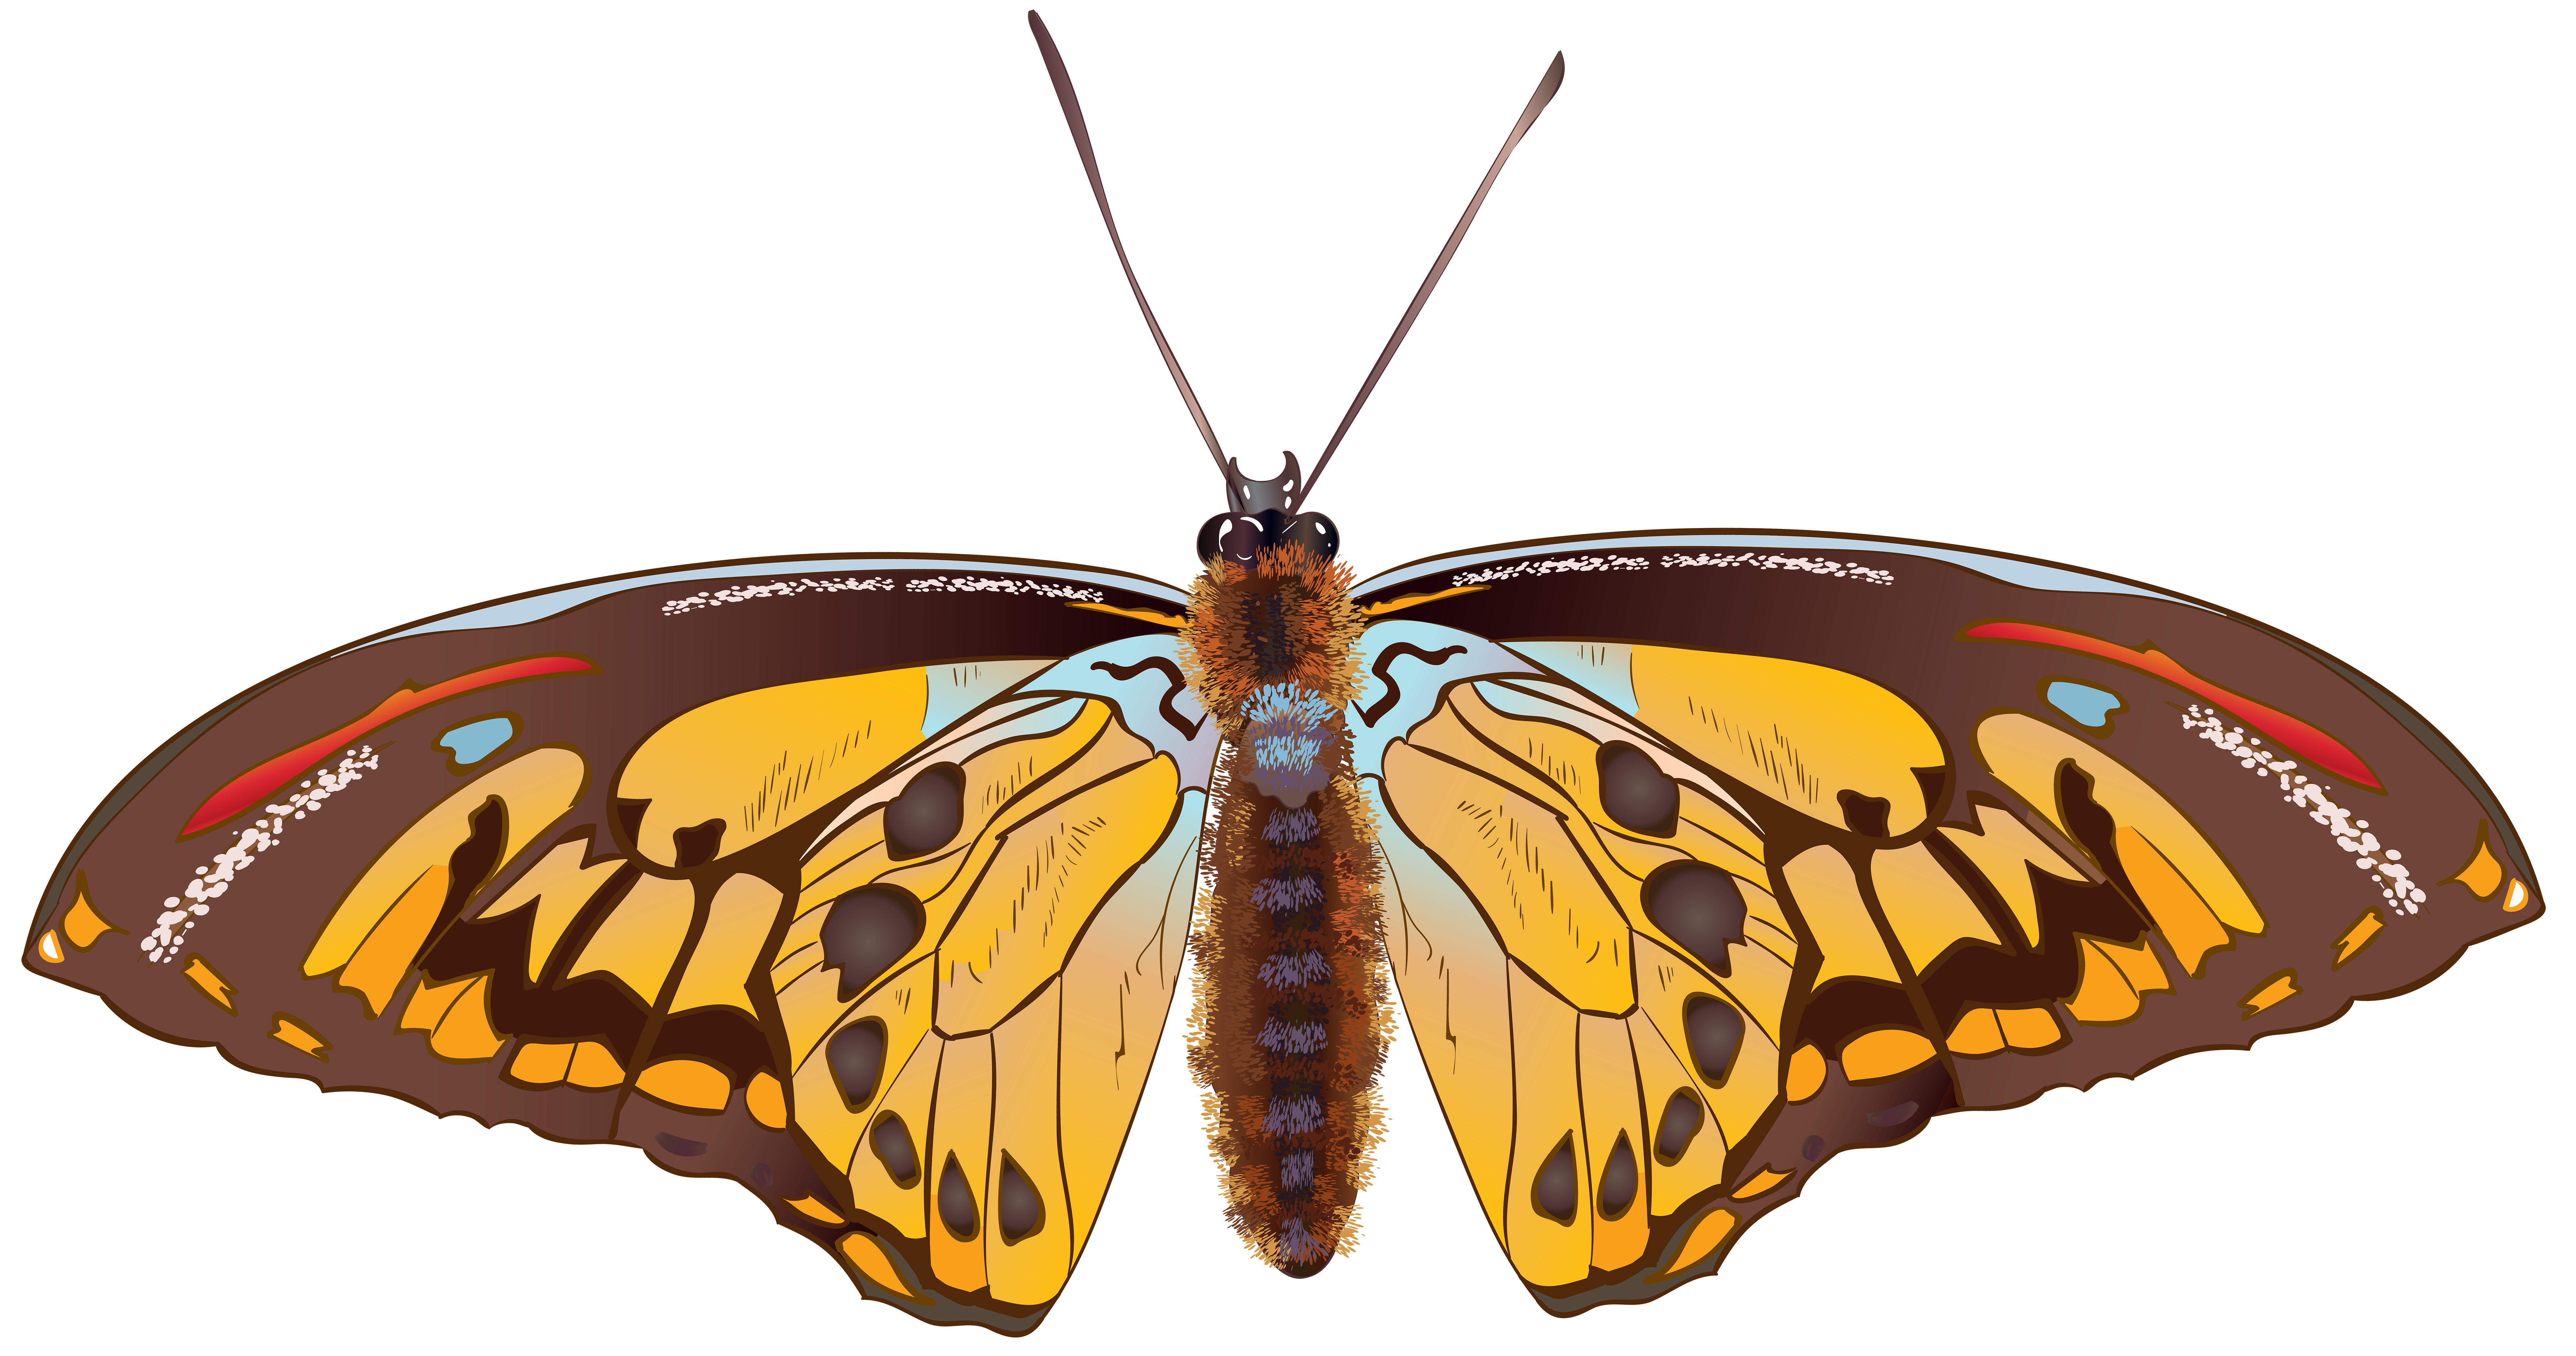 Moth clipart brown butterfly. Png clip art image